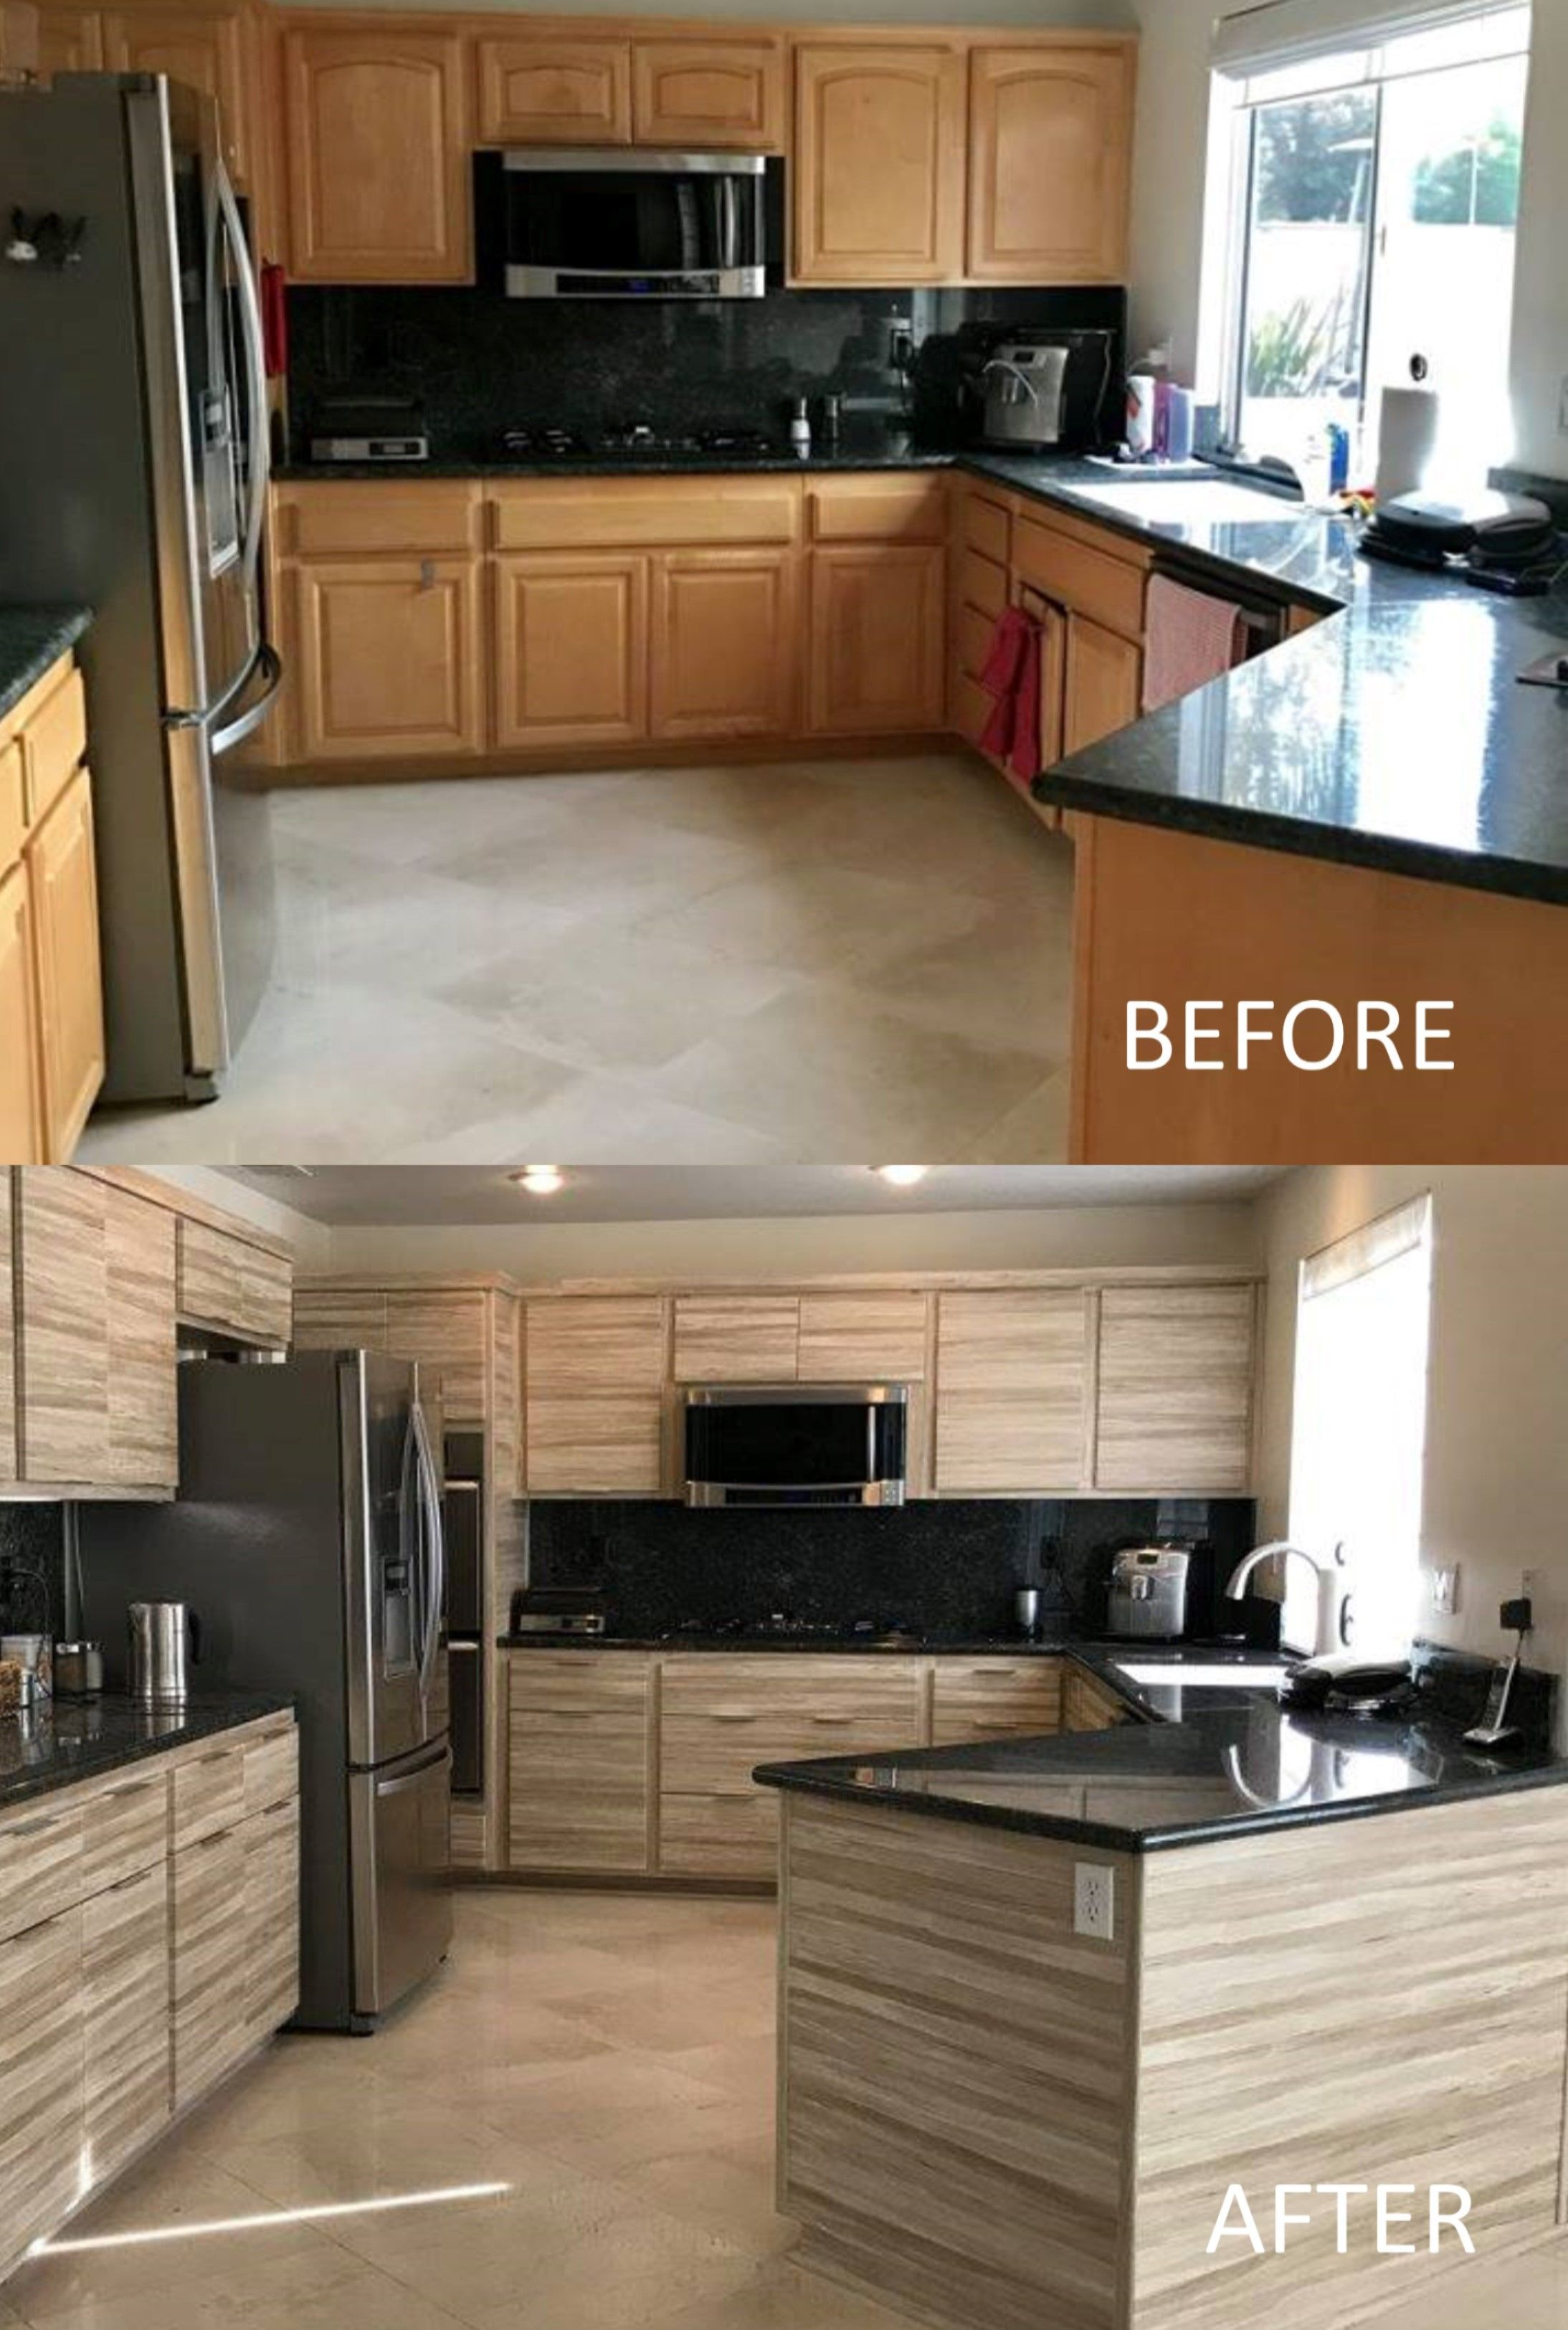 Kitchen Cabinet Reface-Before And After